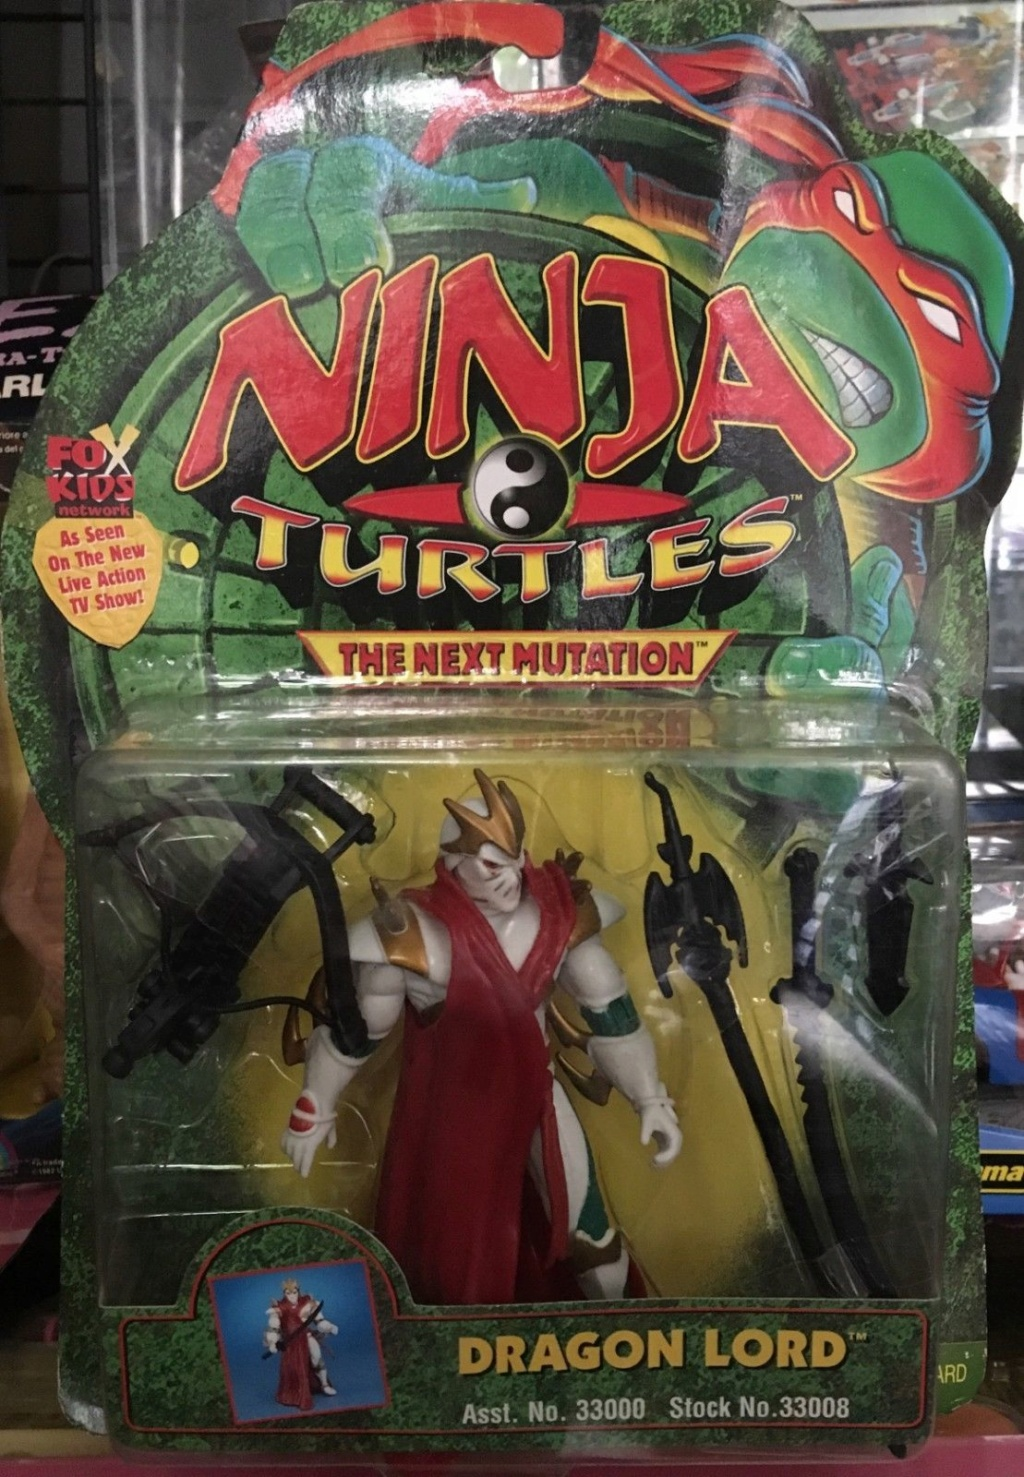 Ninja Turtles THE-NEXT-MUTAT DRAGON LORD Ninja10